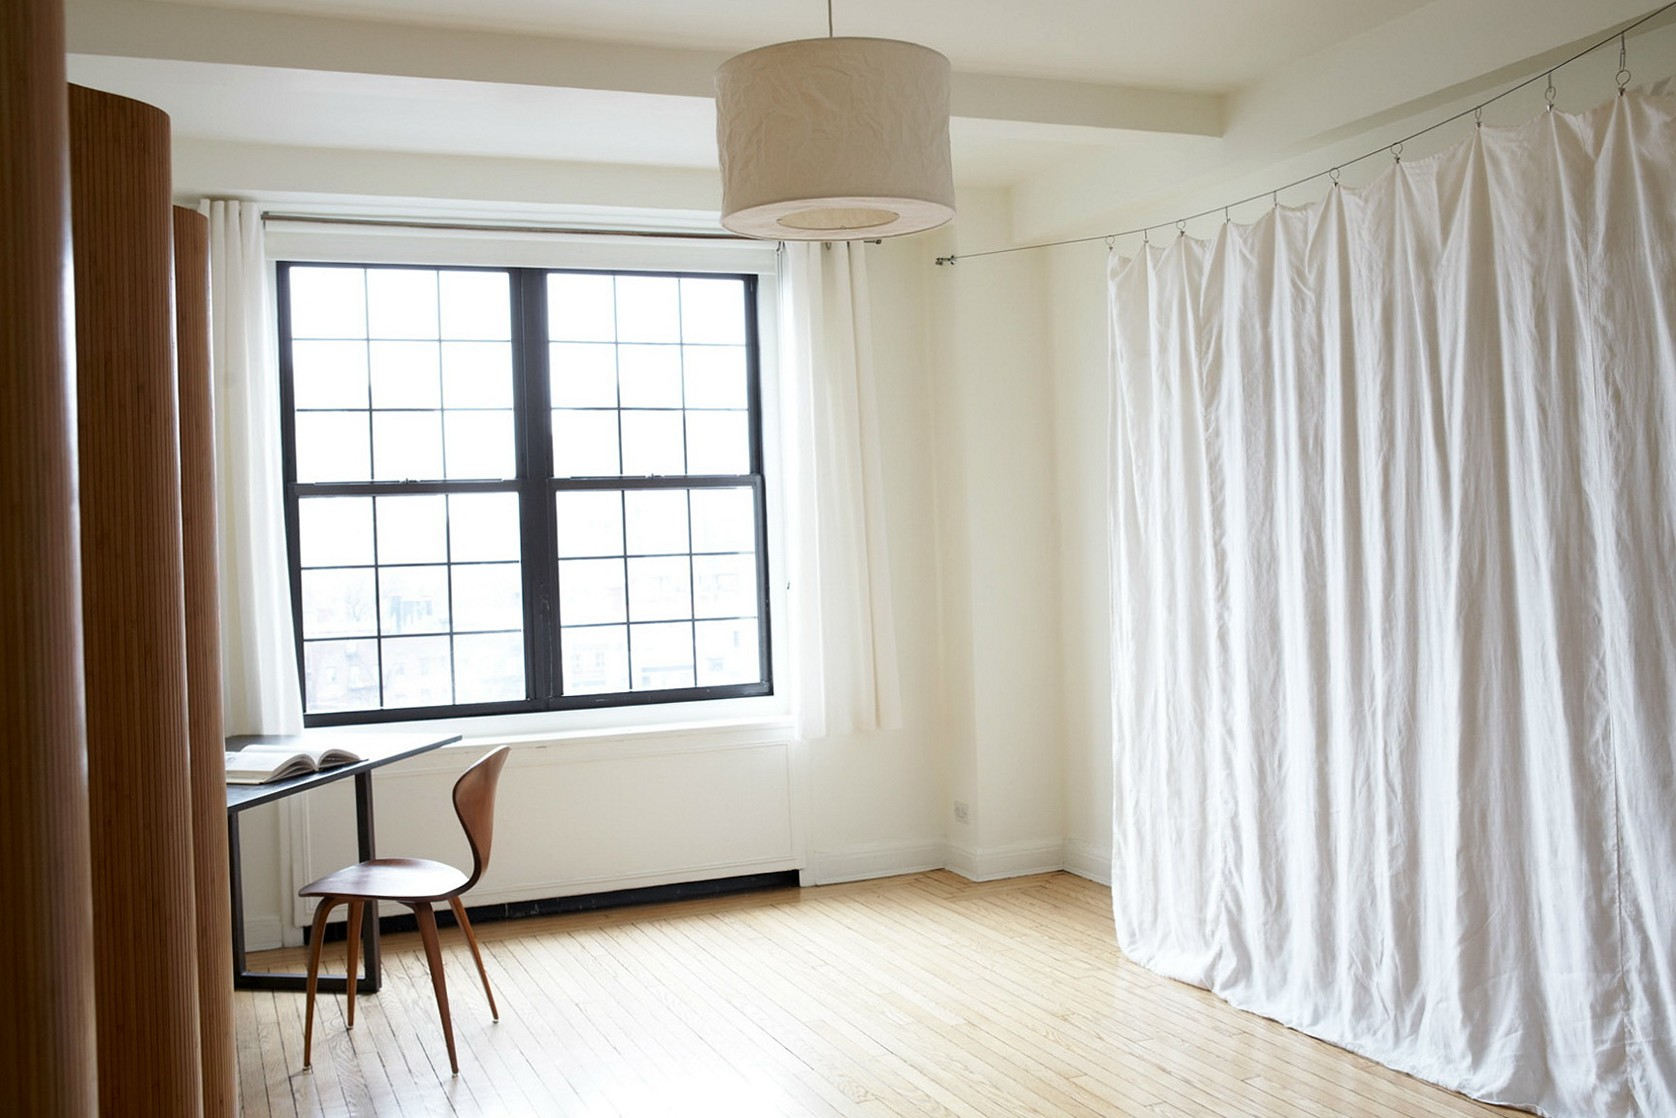 Enchanting Room Divider Curtains for Your Space Room Ideas: Room Divider Curtains | Room Divider Curtains | Room Divider Curtain Rod